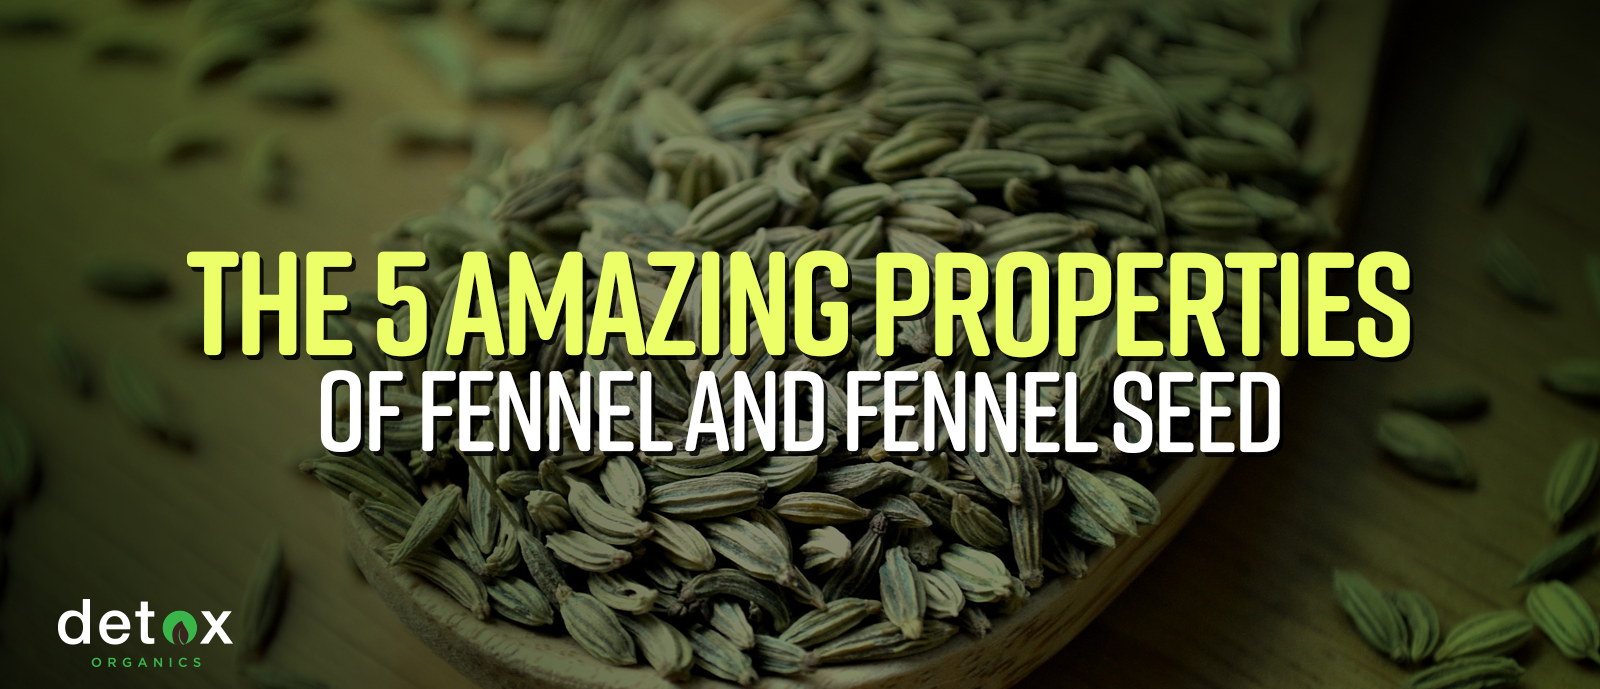 The 5 Amazing Properties of Fennel and Fennel Seed